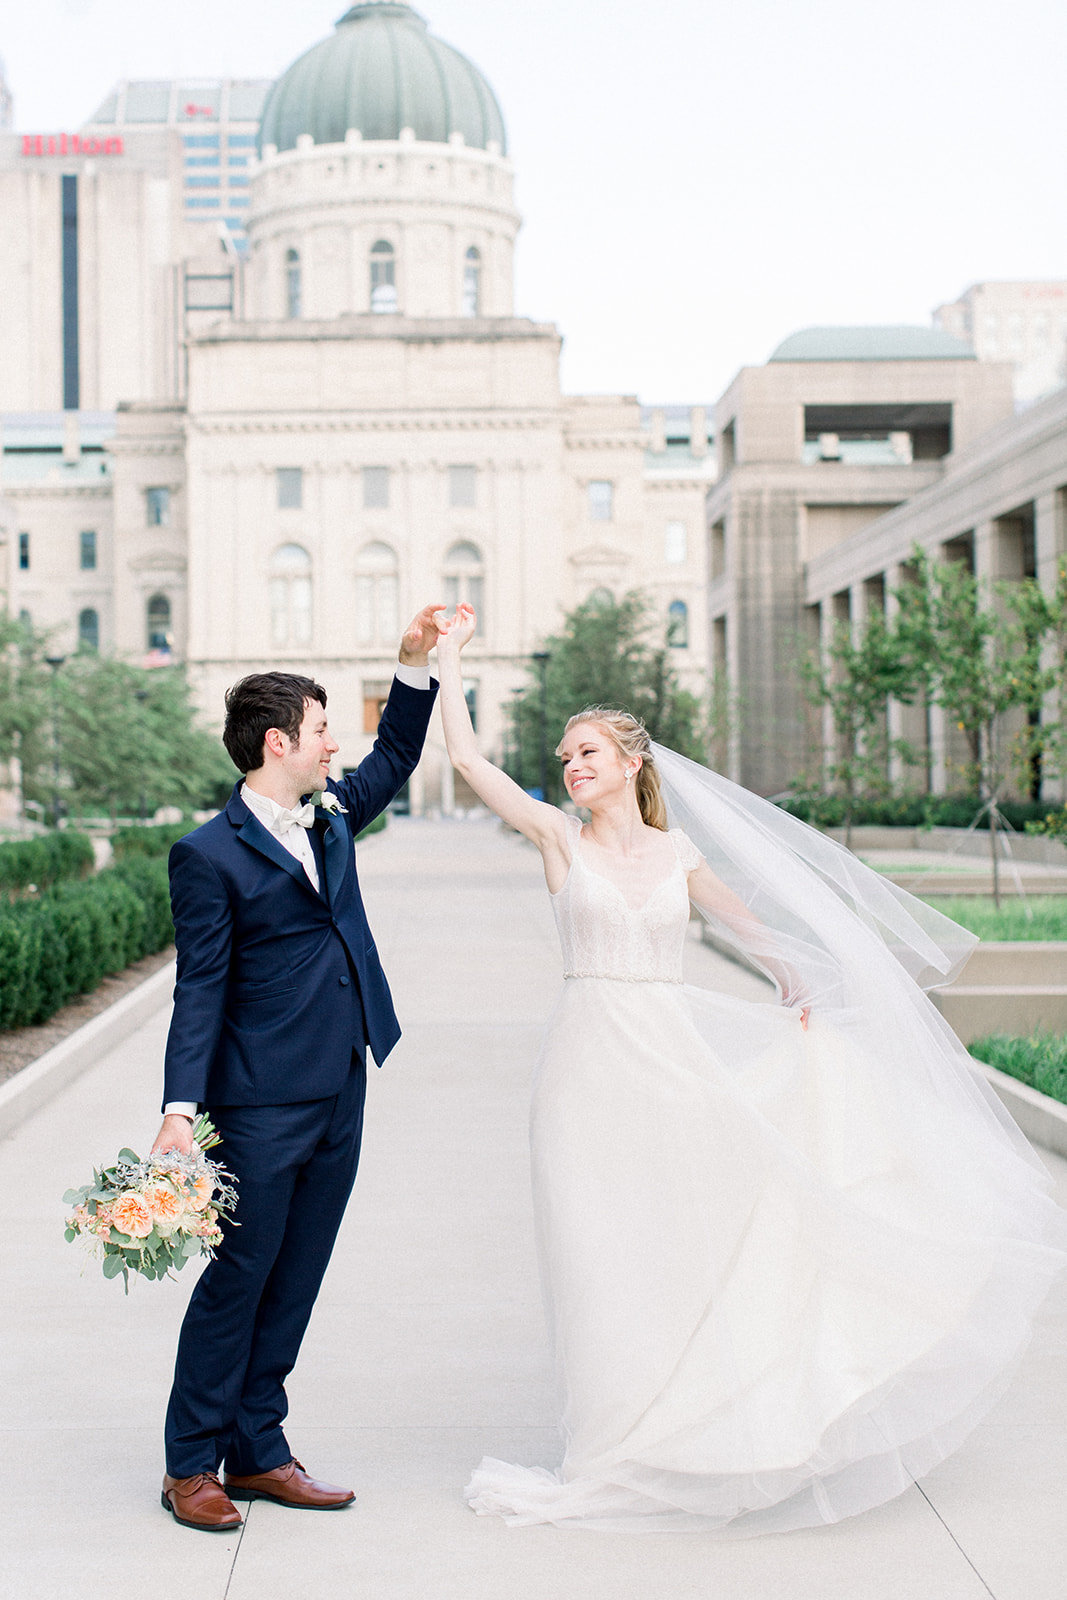 Lisa+Chris-indianapolis-wedding-jenn-plumlee-photography24